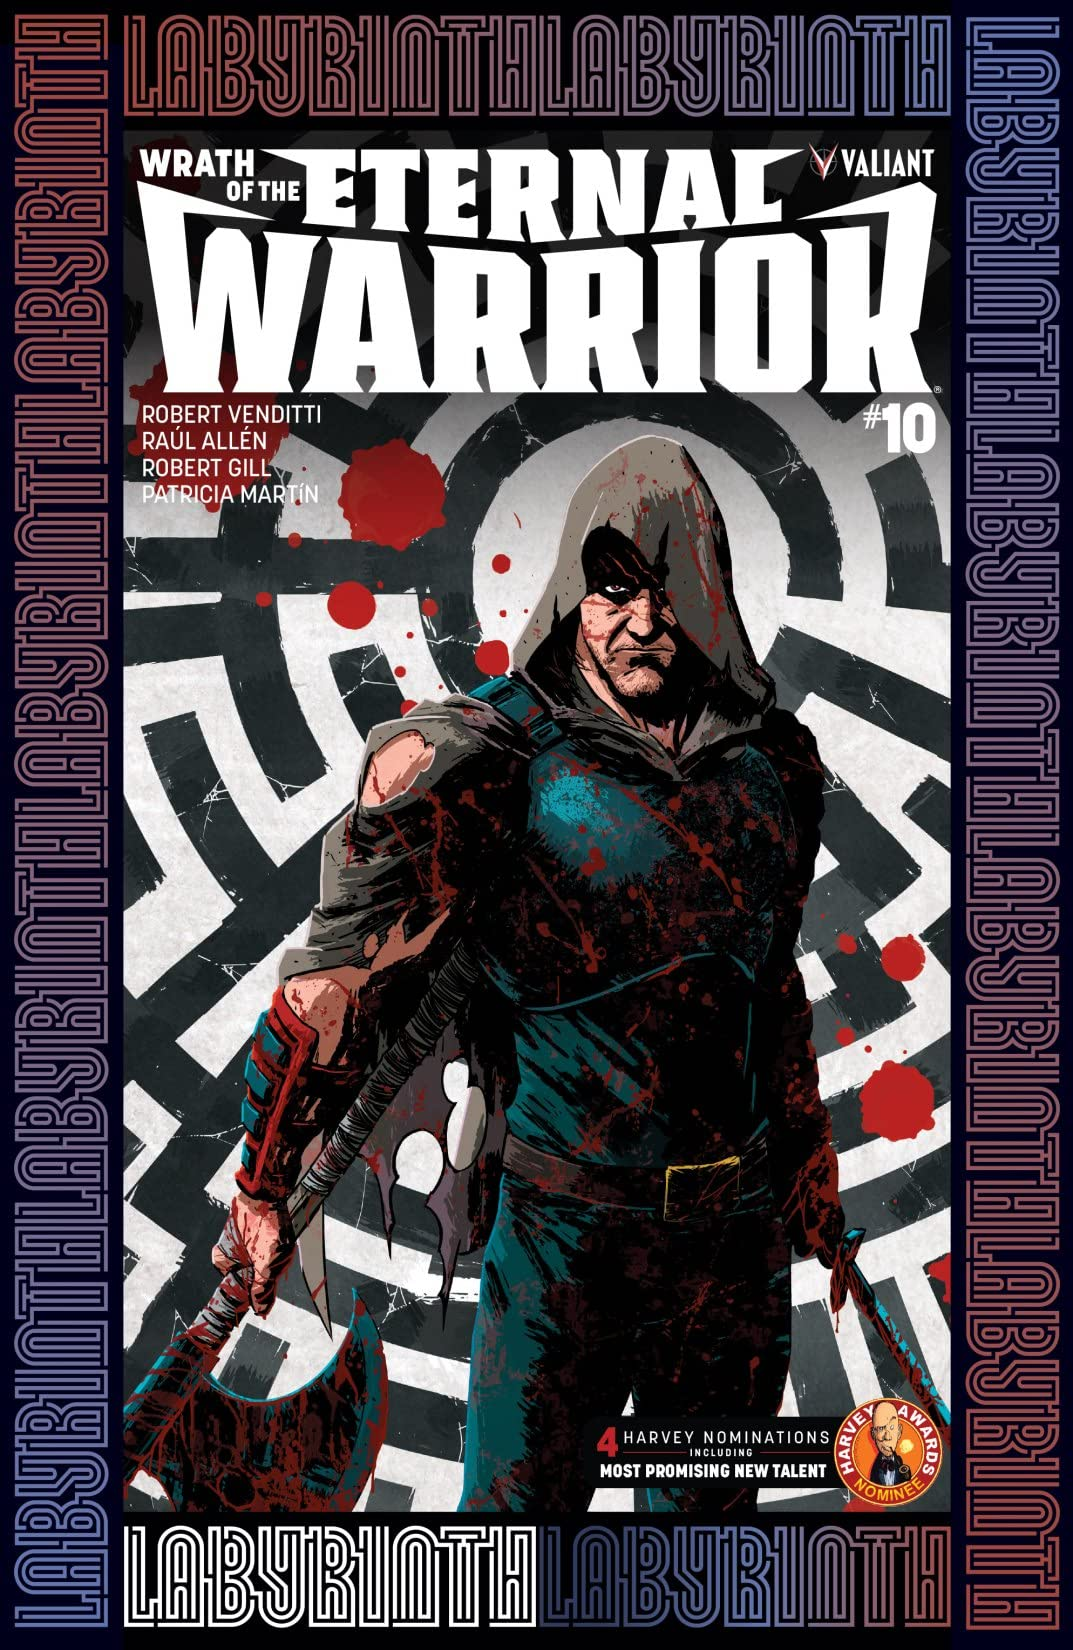 Wrath of the Eternal Warrior #10: Digital Exclusives Edition